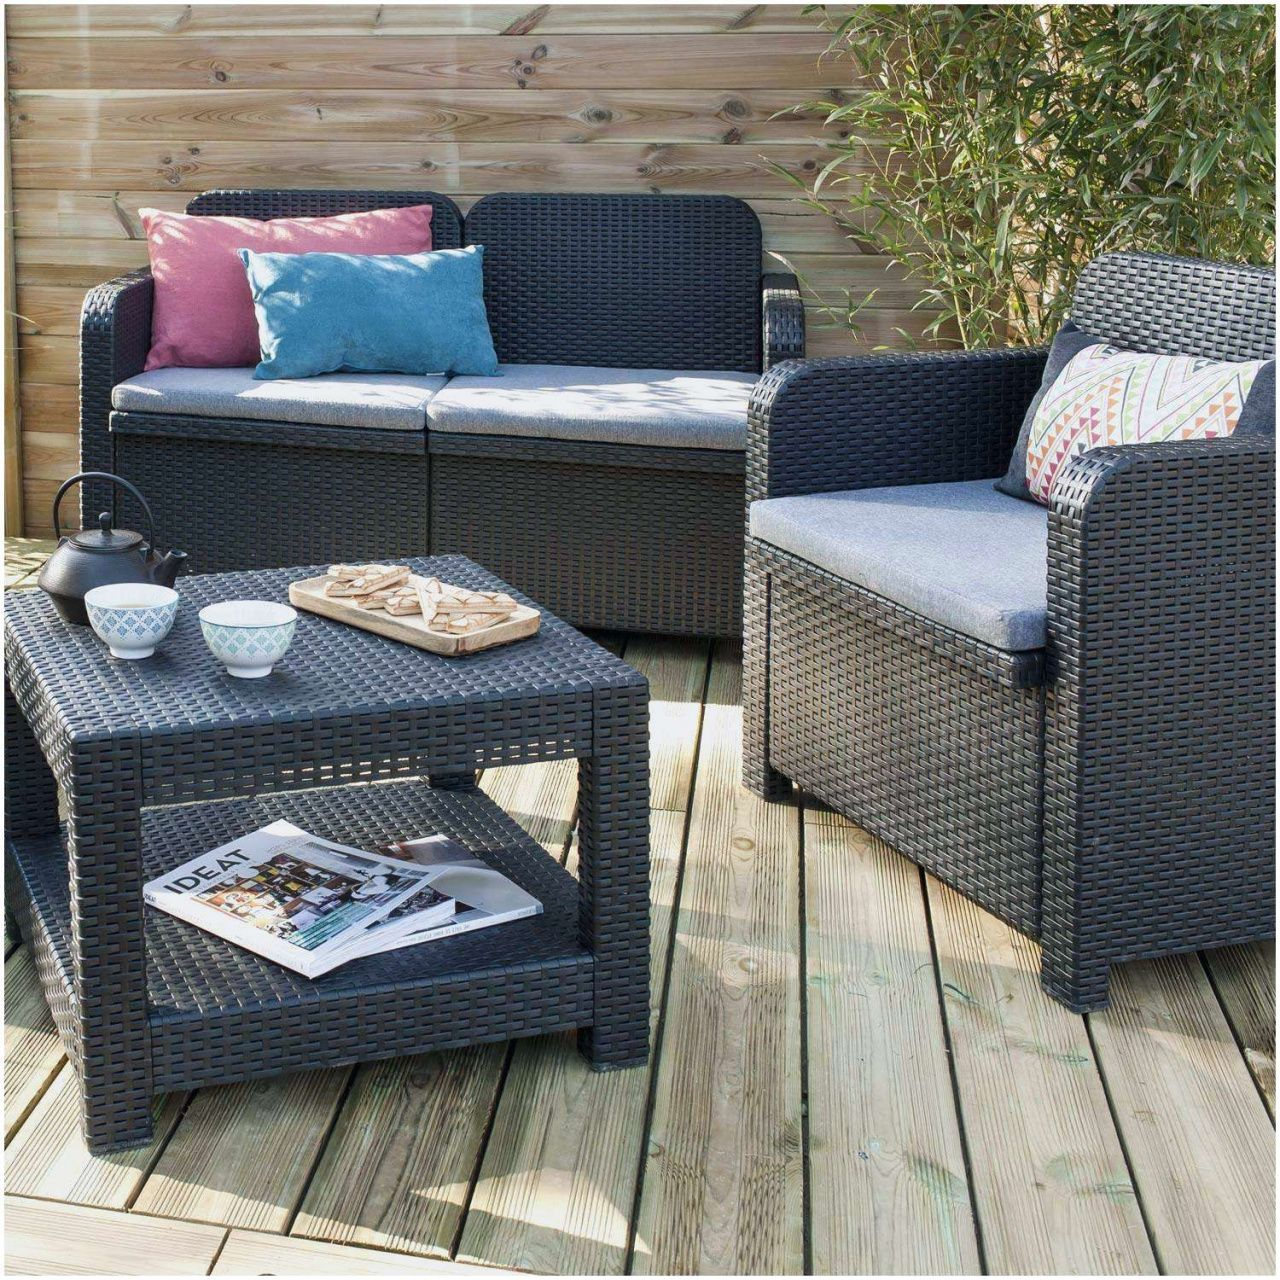 201 Plan De Travail Bricorama Check More At Https Southfloridasalon Com 77 Plan De Travail Bricorama Outdoor Furniture Outdoor Furniture Sets Outdoor